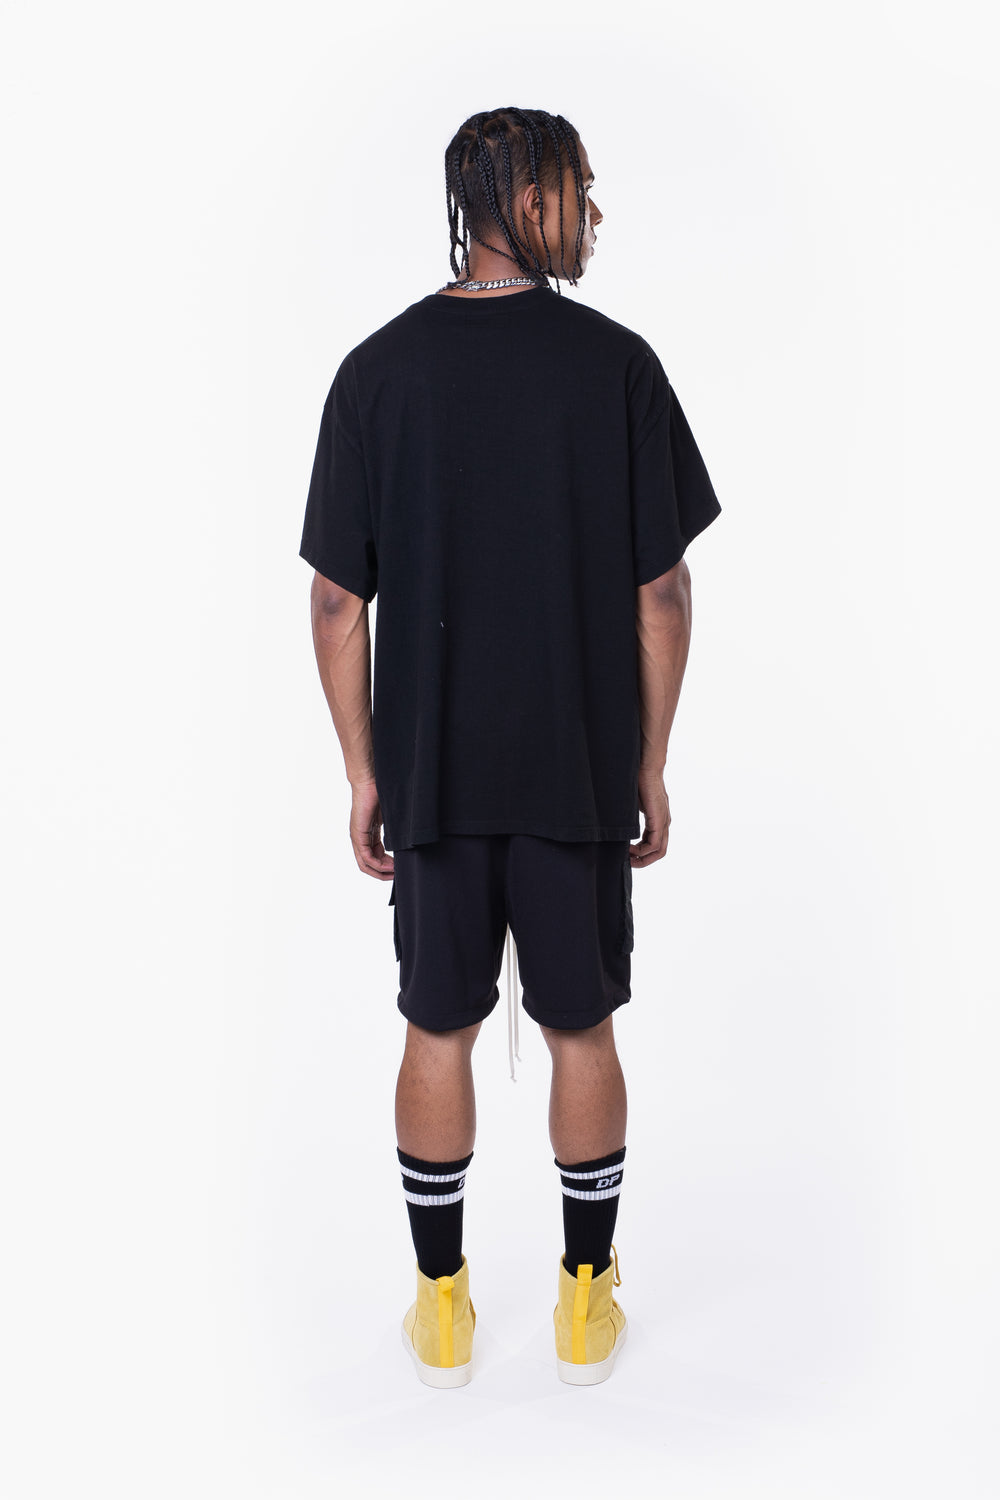 vertical logo tee / black + smog grey